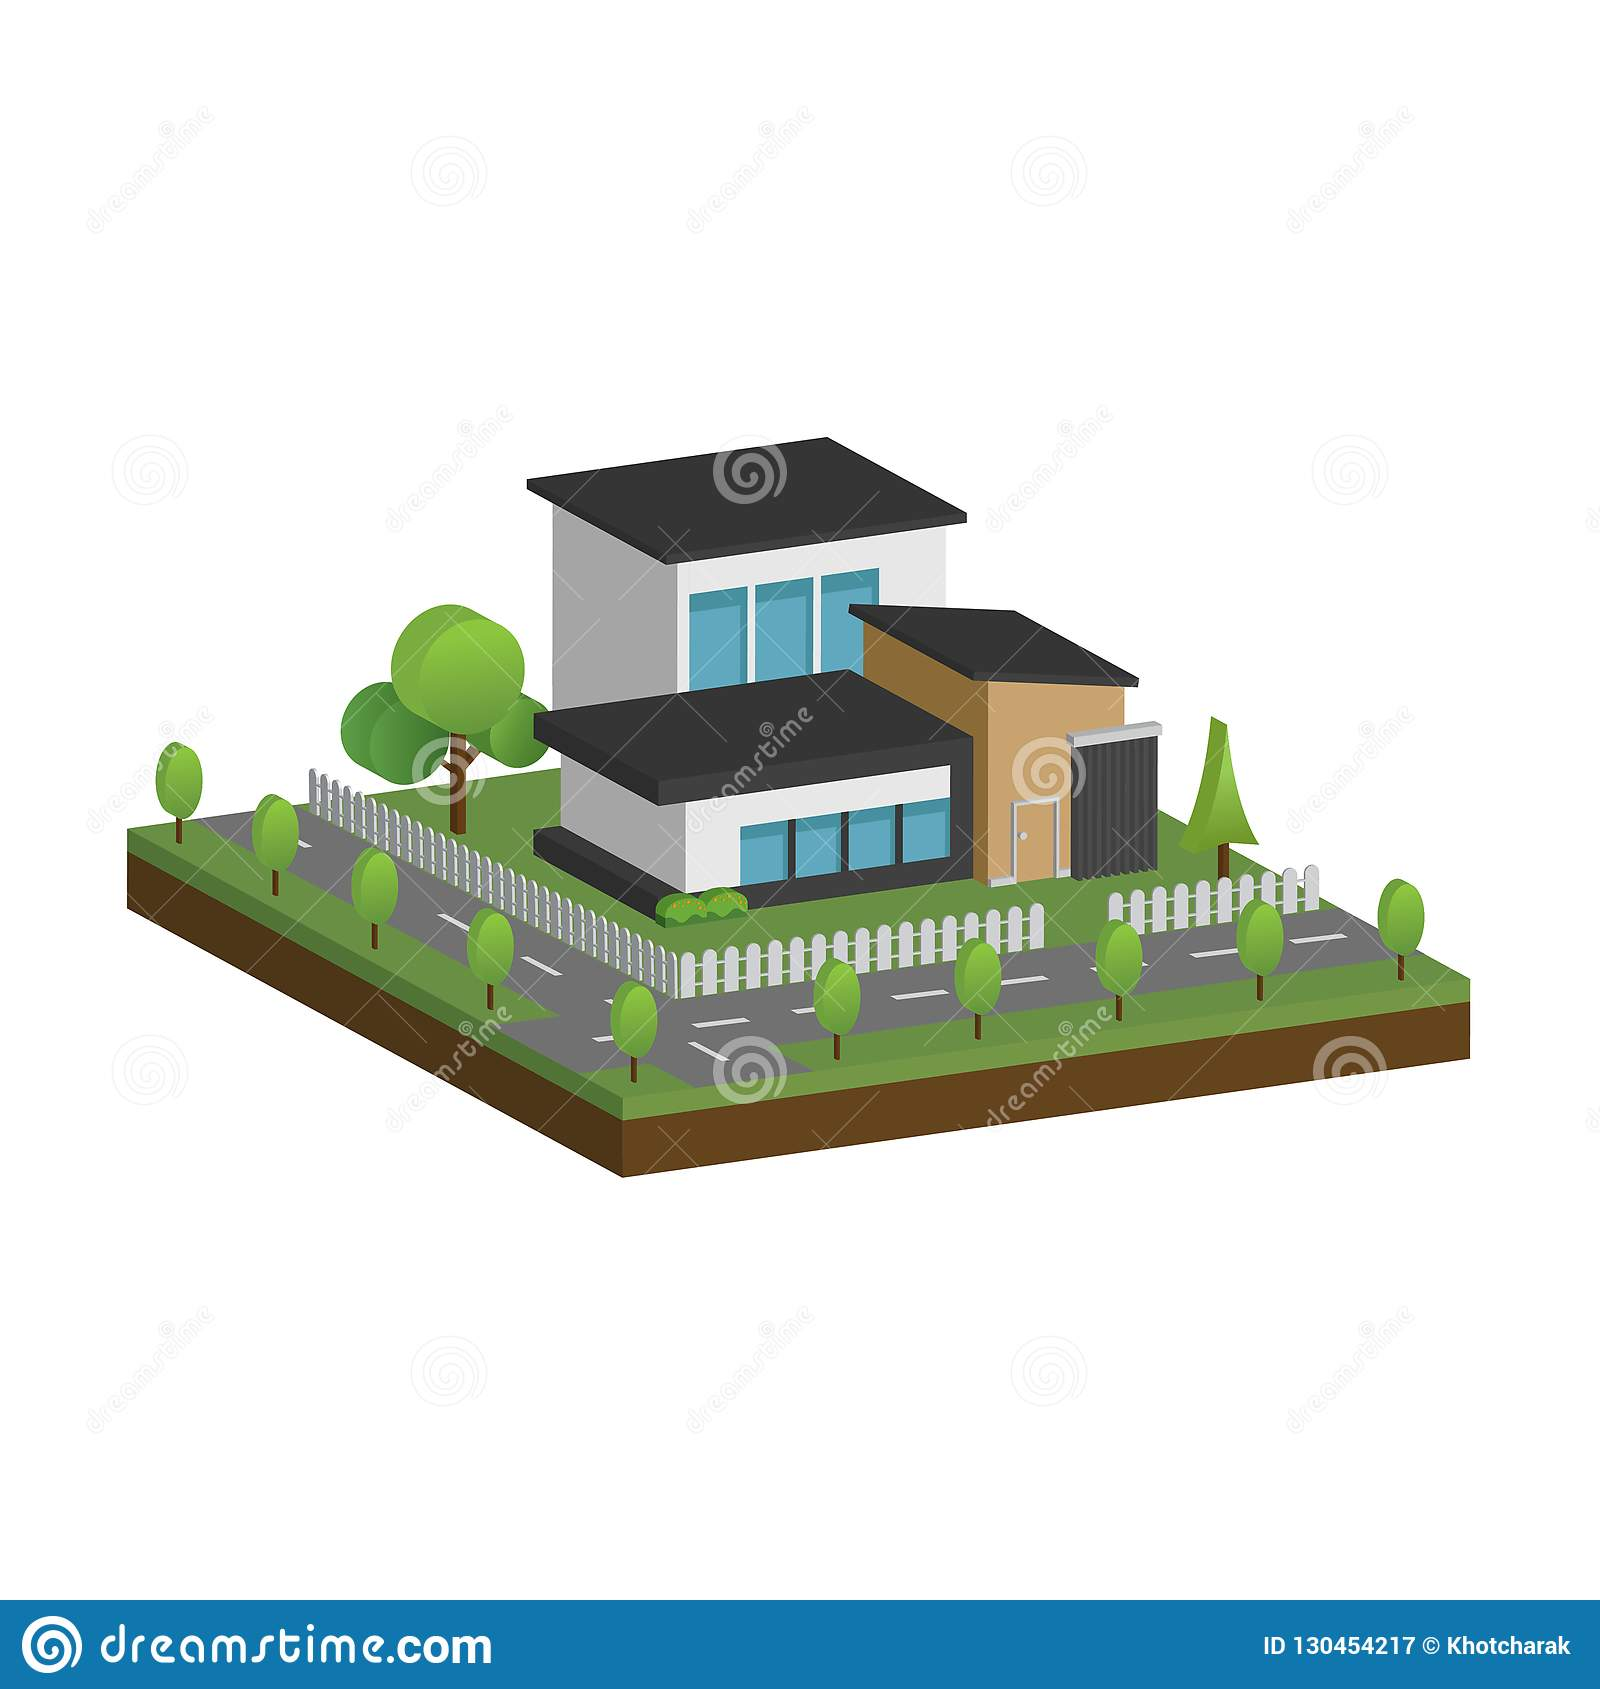 Isometric And 3d Of Modern Houses And Building Architecture Design Stock Illustration Illustration Of Diversity Apartment 130454217